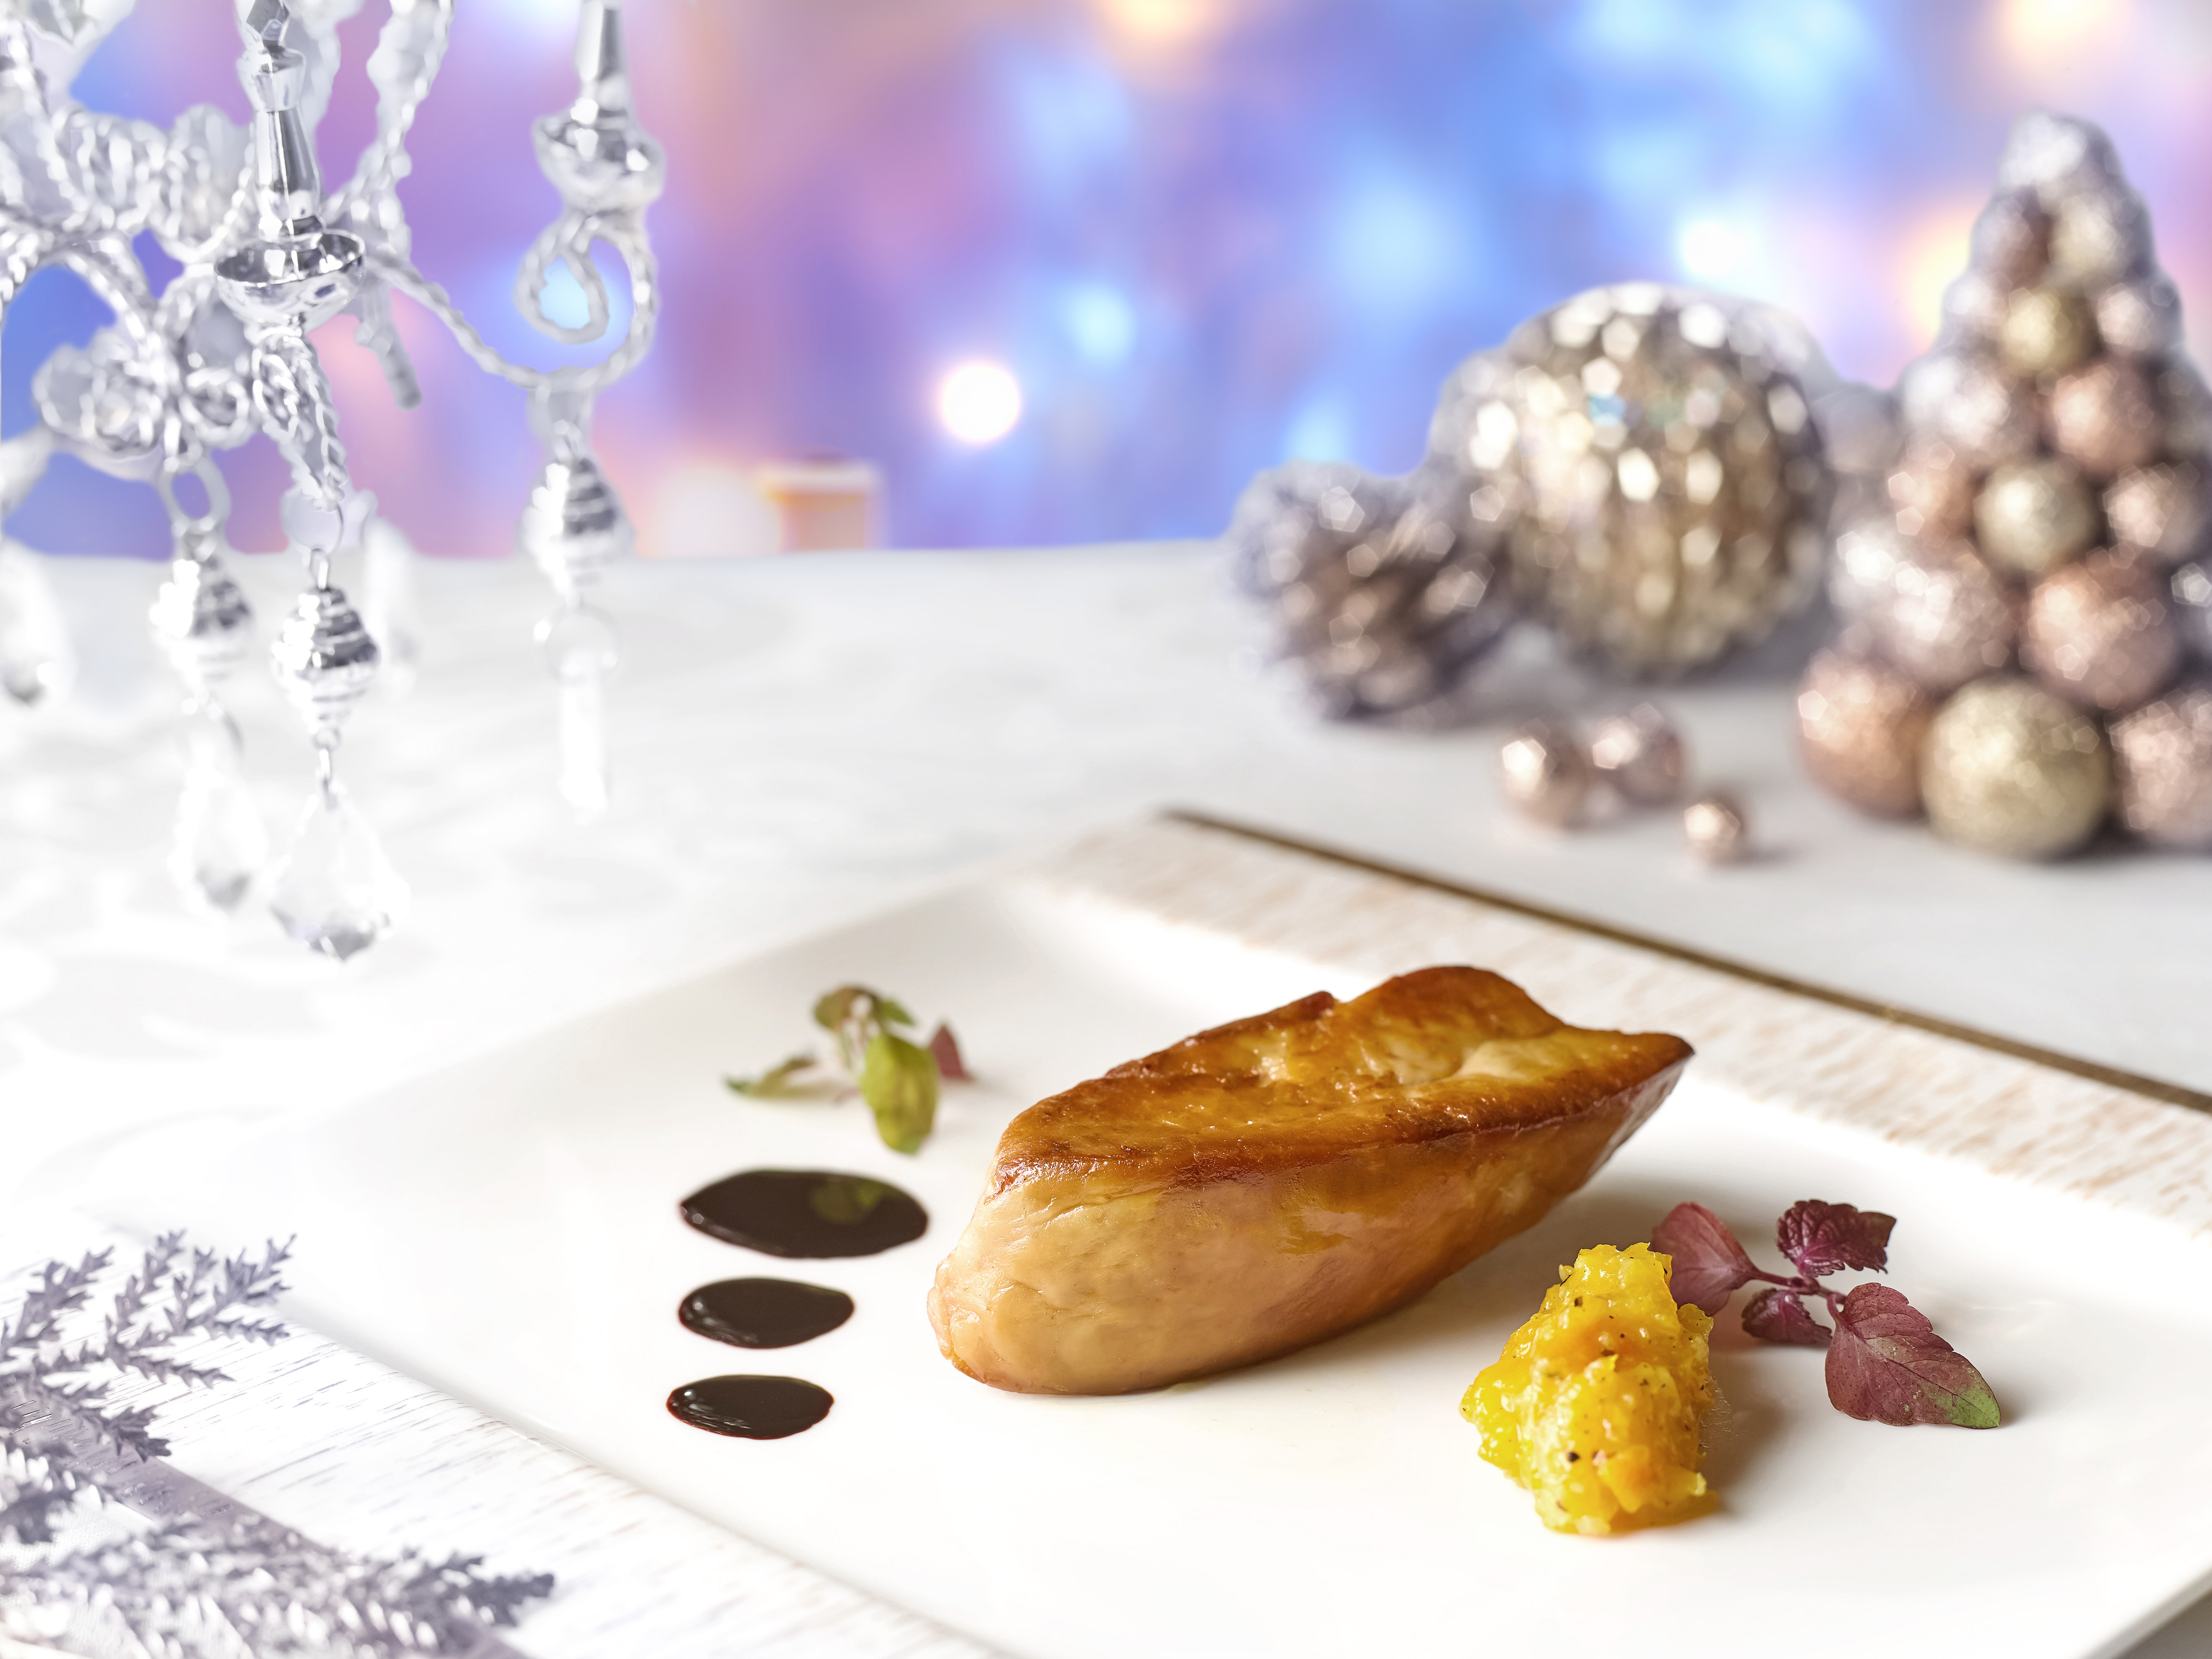 Marriott Cafe - Pan Fried Duck Foie Gras with Chutney, Relish and Brioche